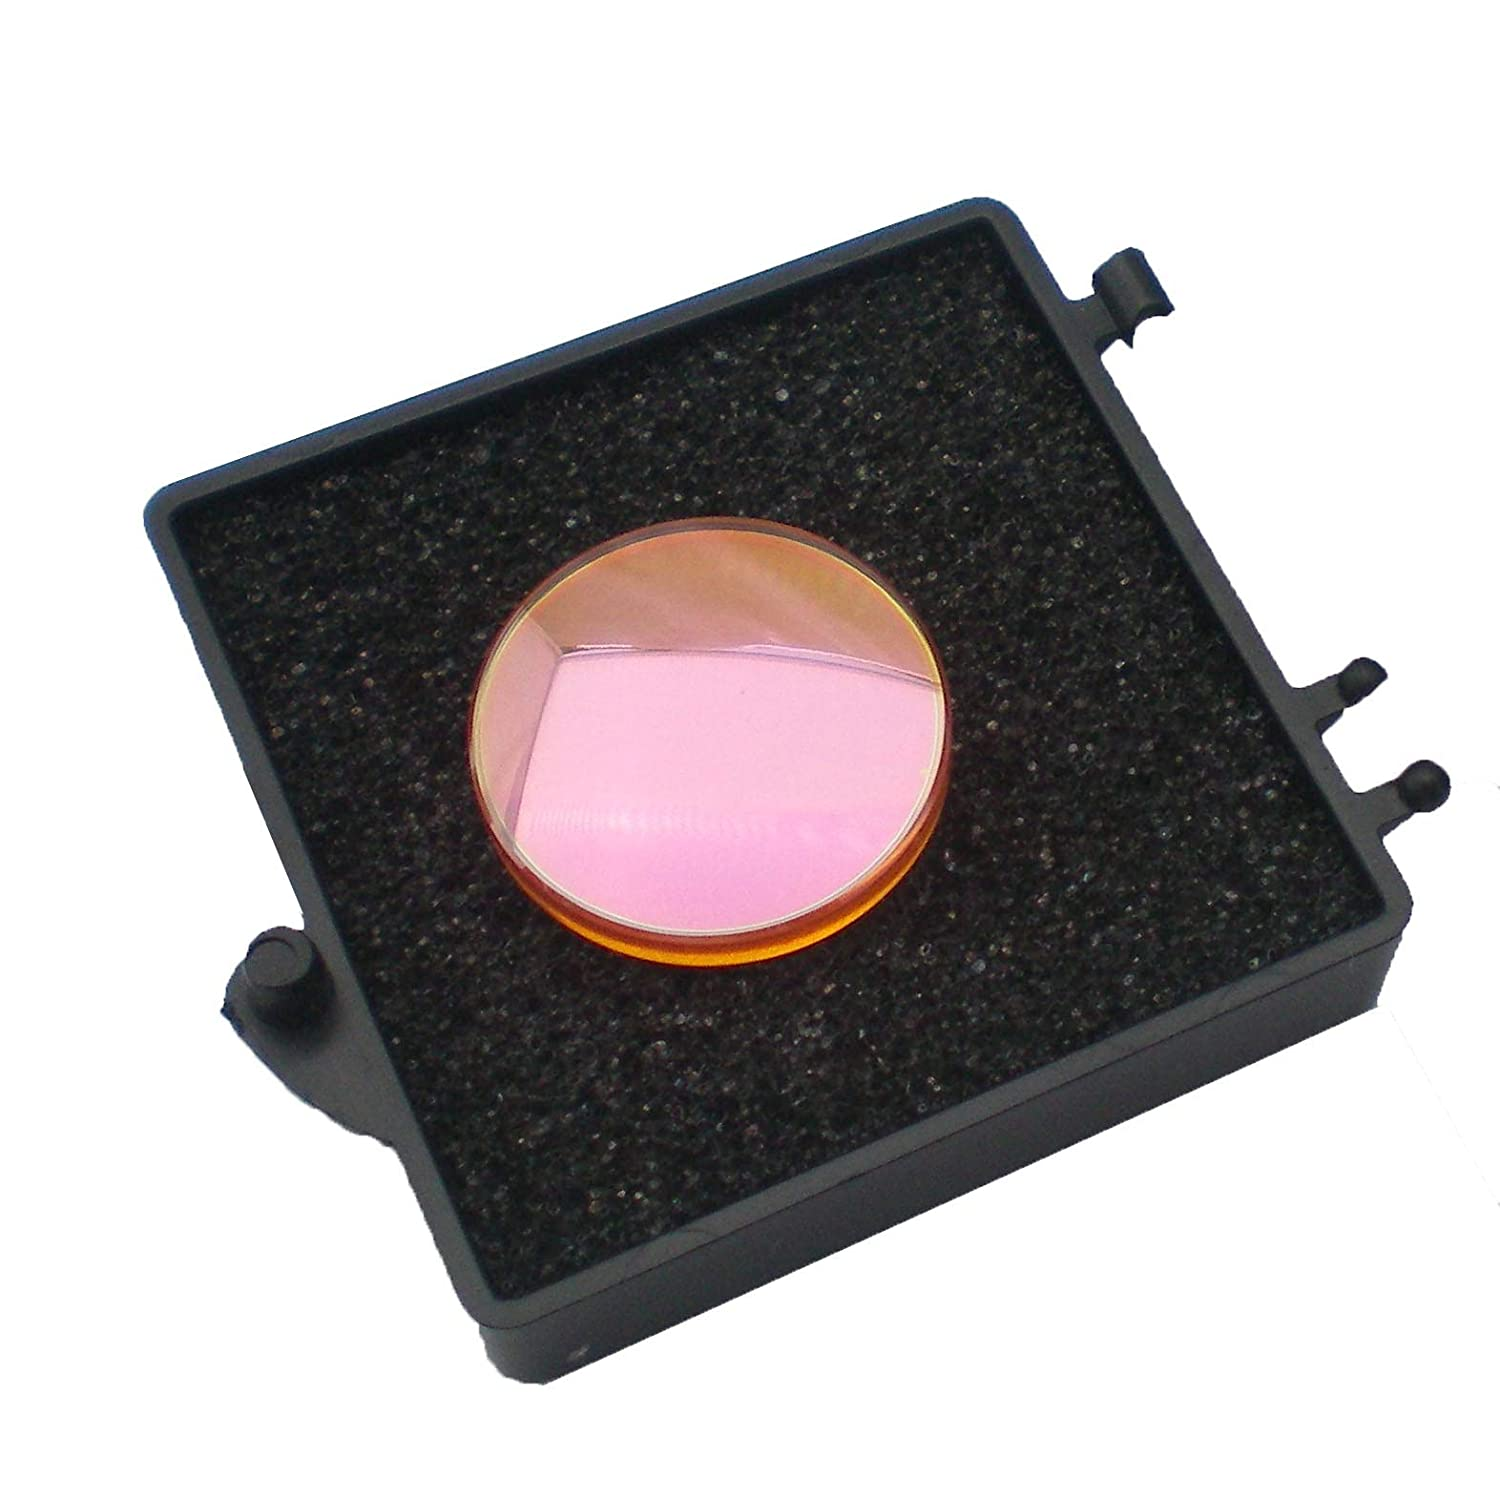 20mm ZnSe Focus Lens for CO2 10600nm 10.6um Laser Engraver/Cutter Dia:20mm FL:2' Or 50.8mm Cole